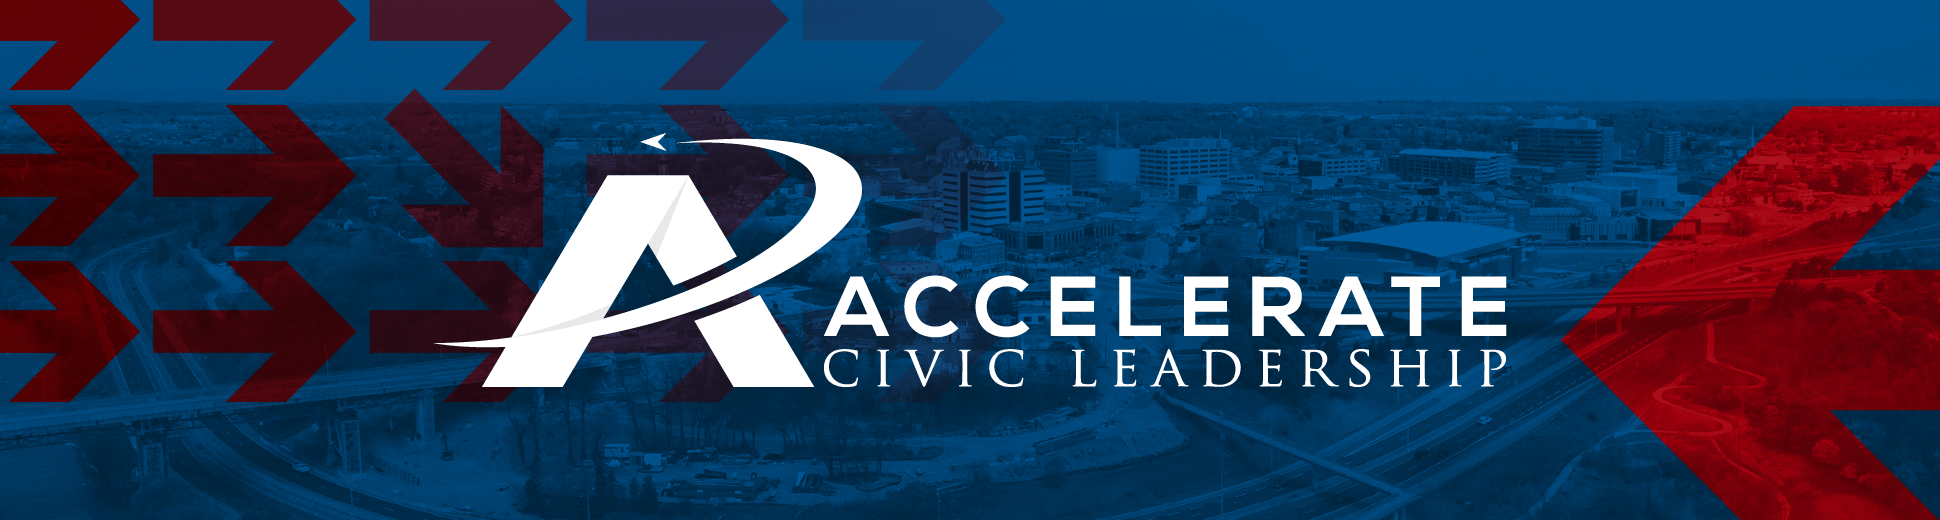 Accelerate Civic Leadership 2019